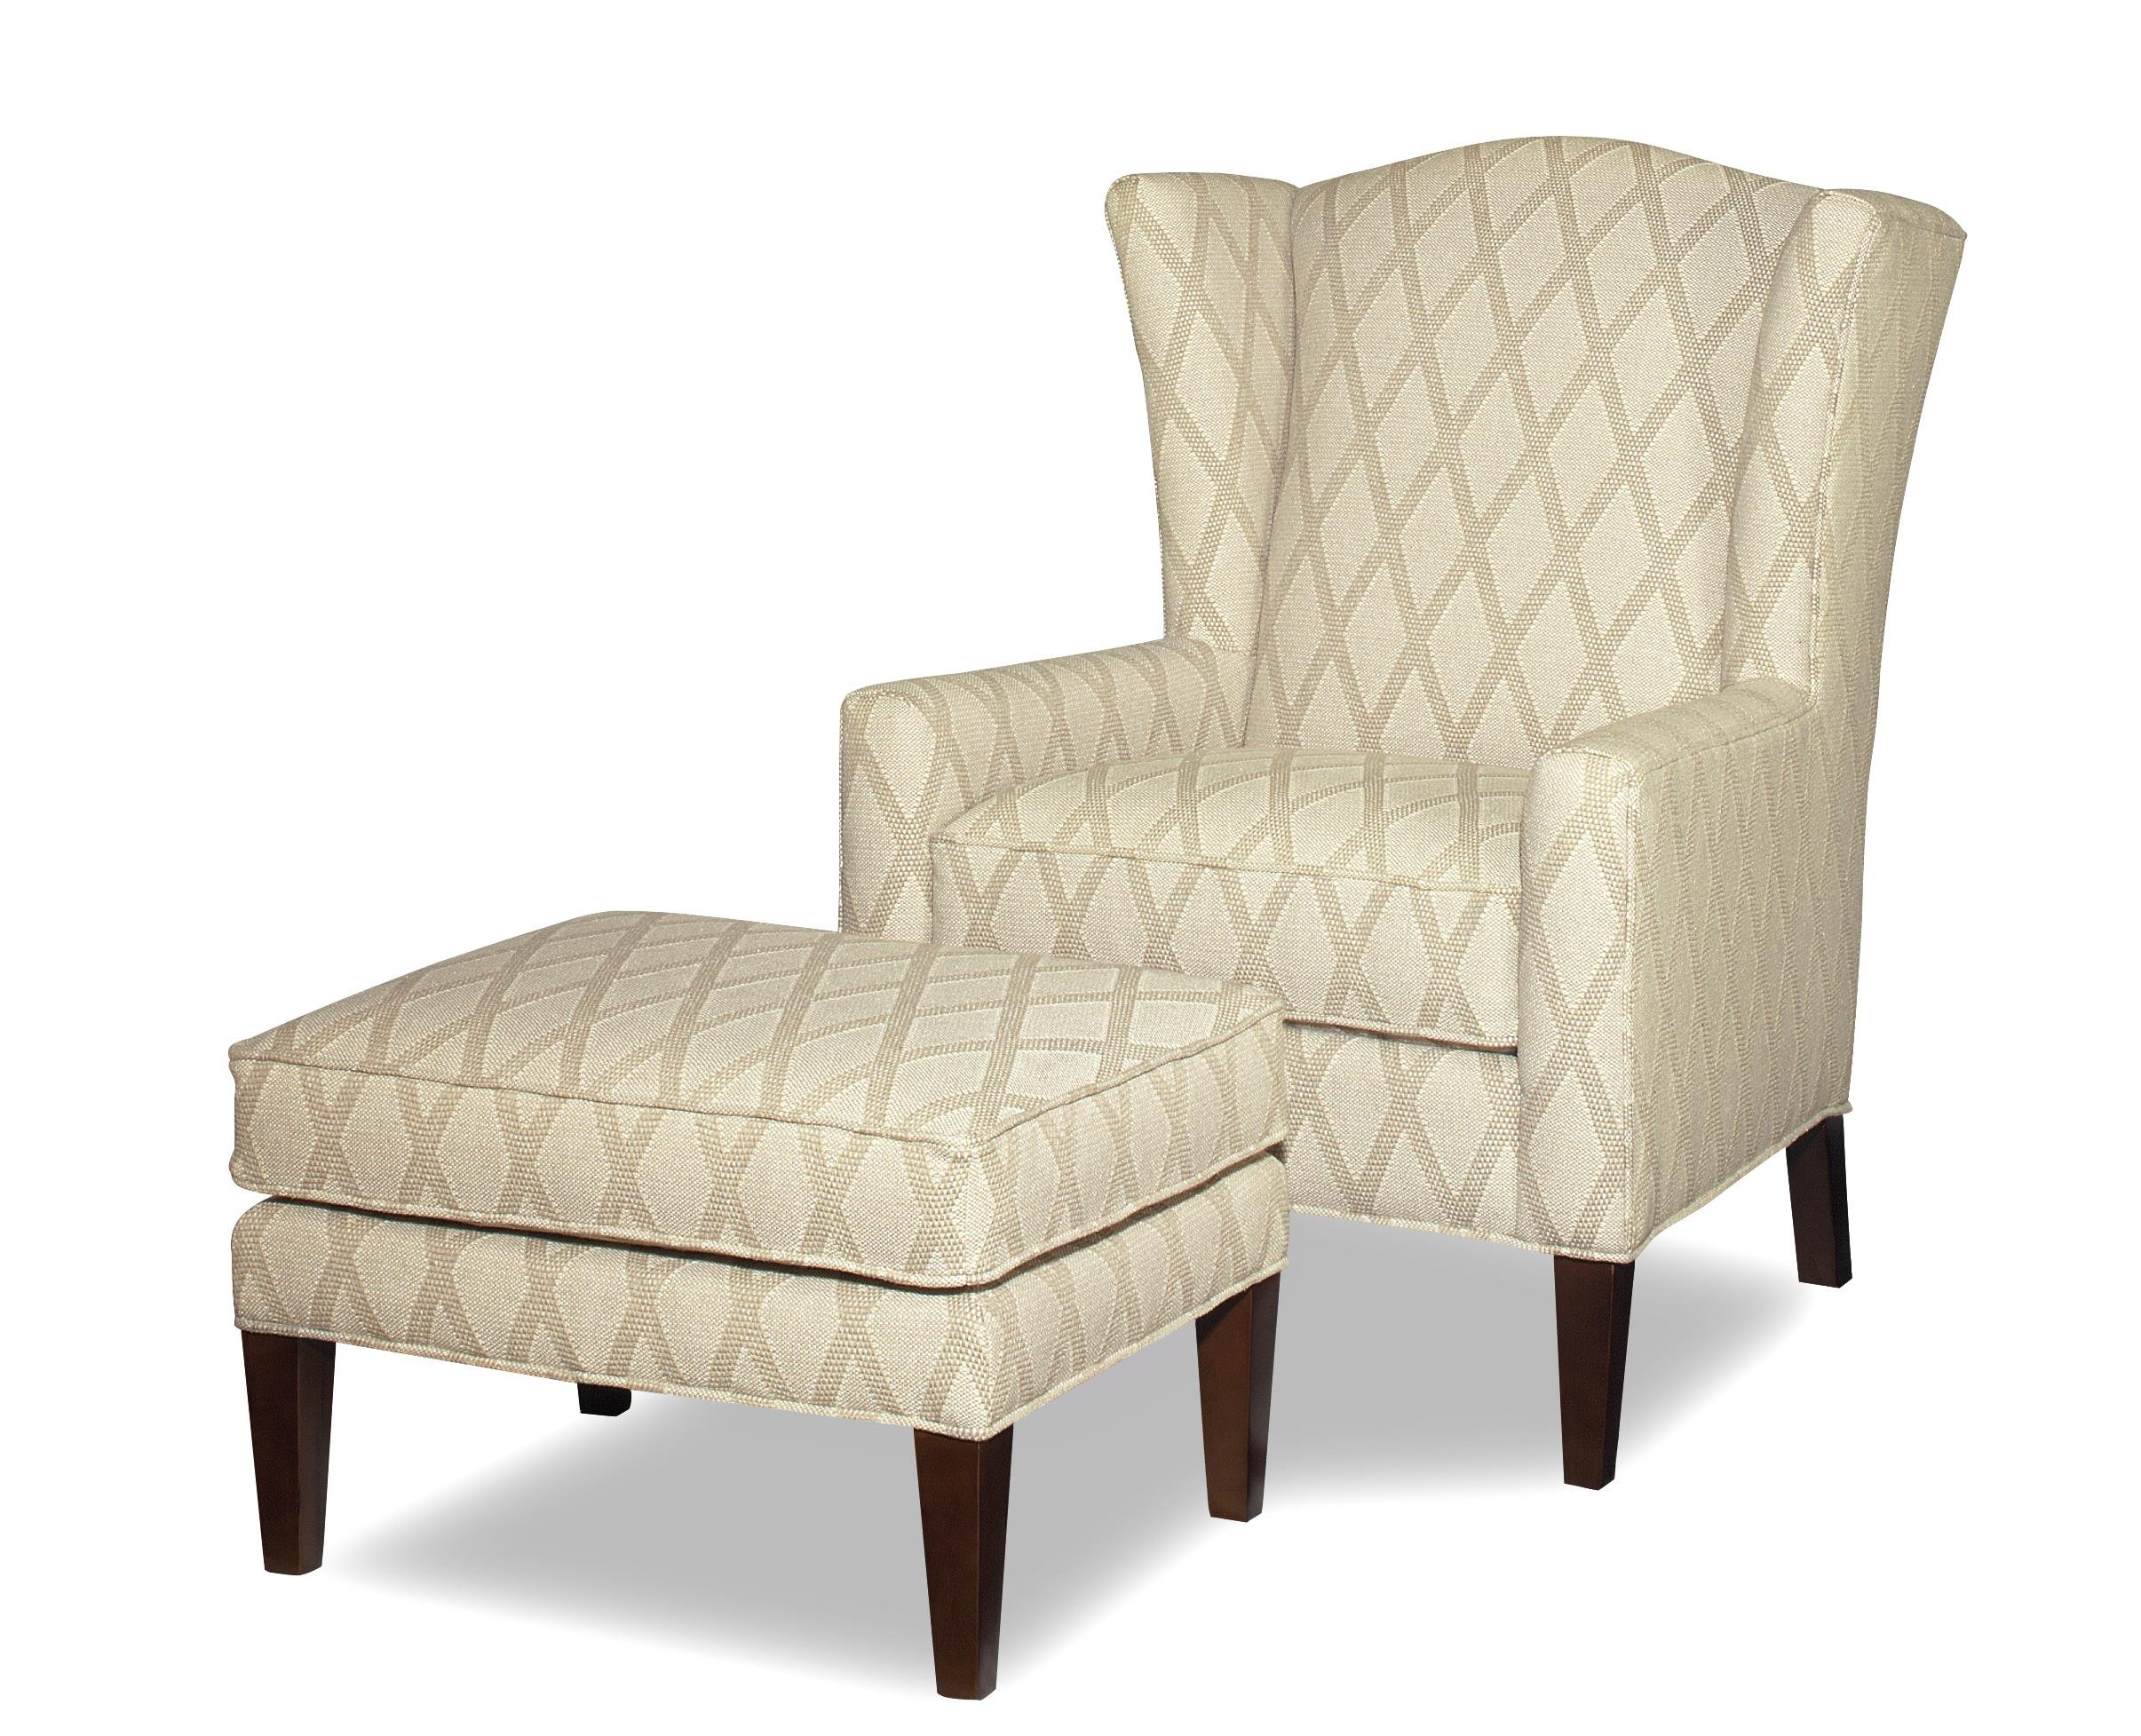 Transitional Wing Chair with Wide Flared Wings by Craftmaster